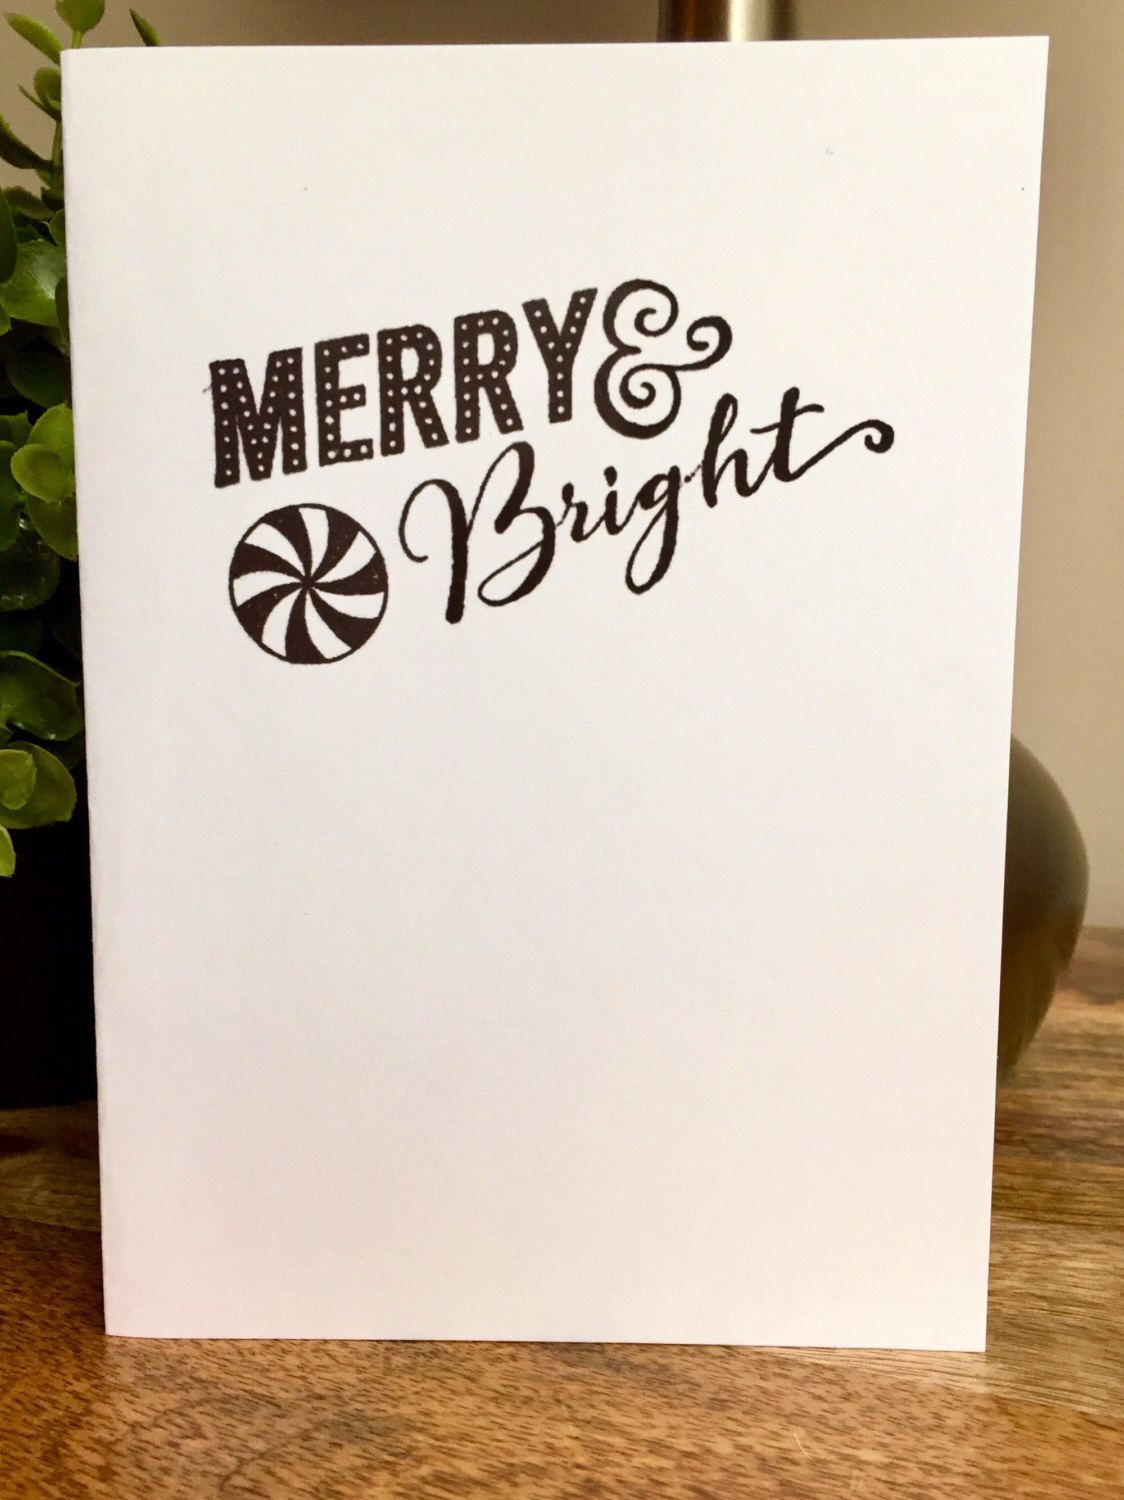 20 pack christmas cards merry and bright bulk christmas cards a personal favorite from my etsy shop httpsetsylisting483652445merrie and bright bulk christmas cards m4hsunfo